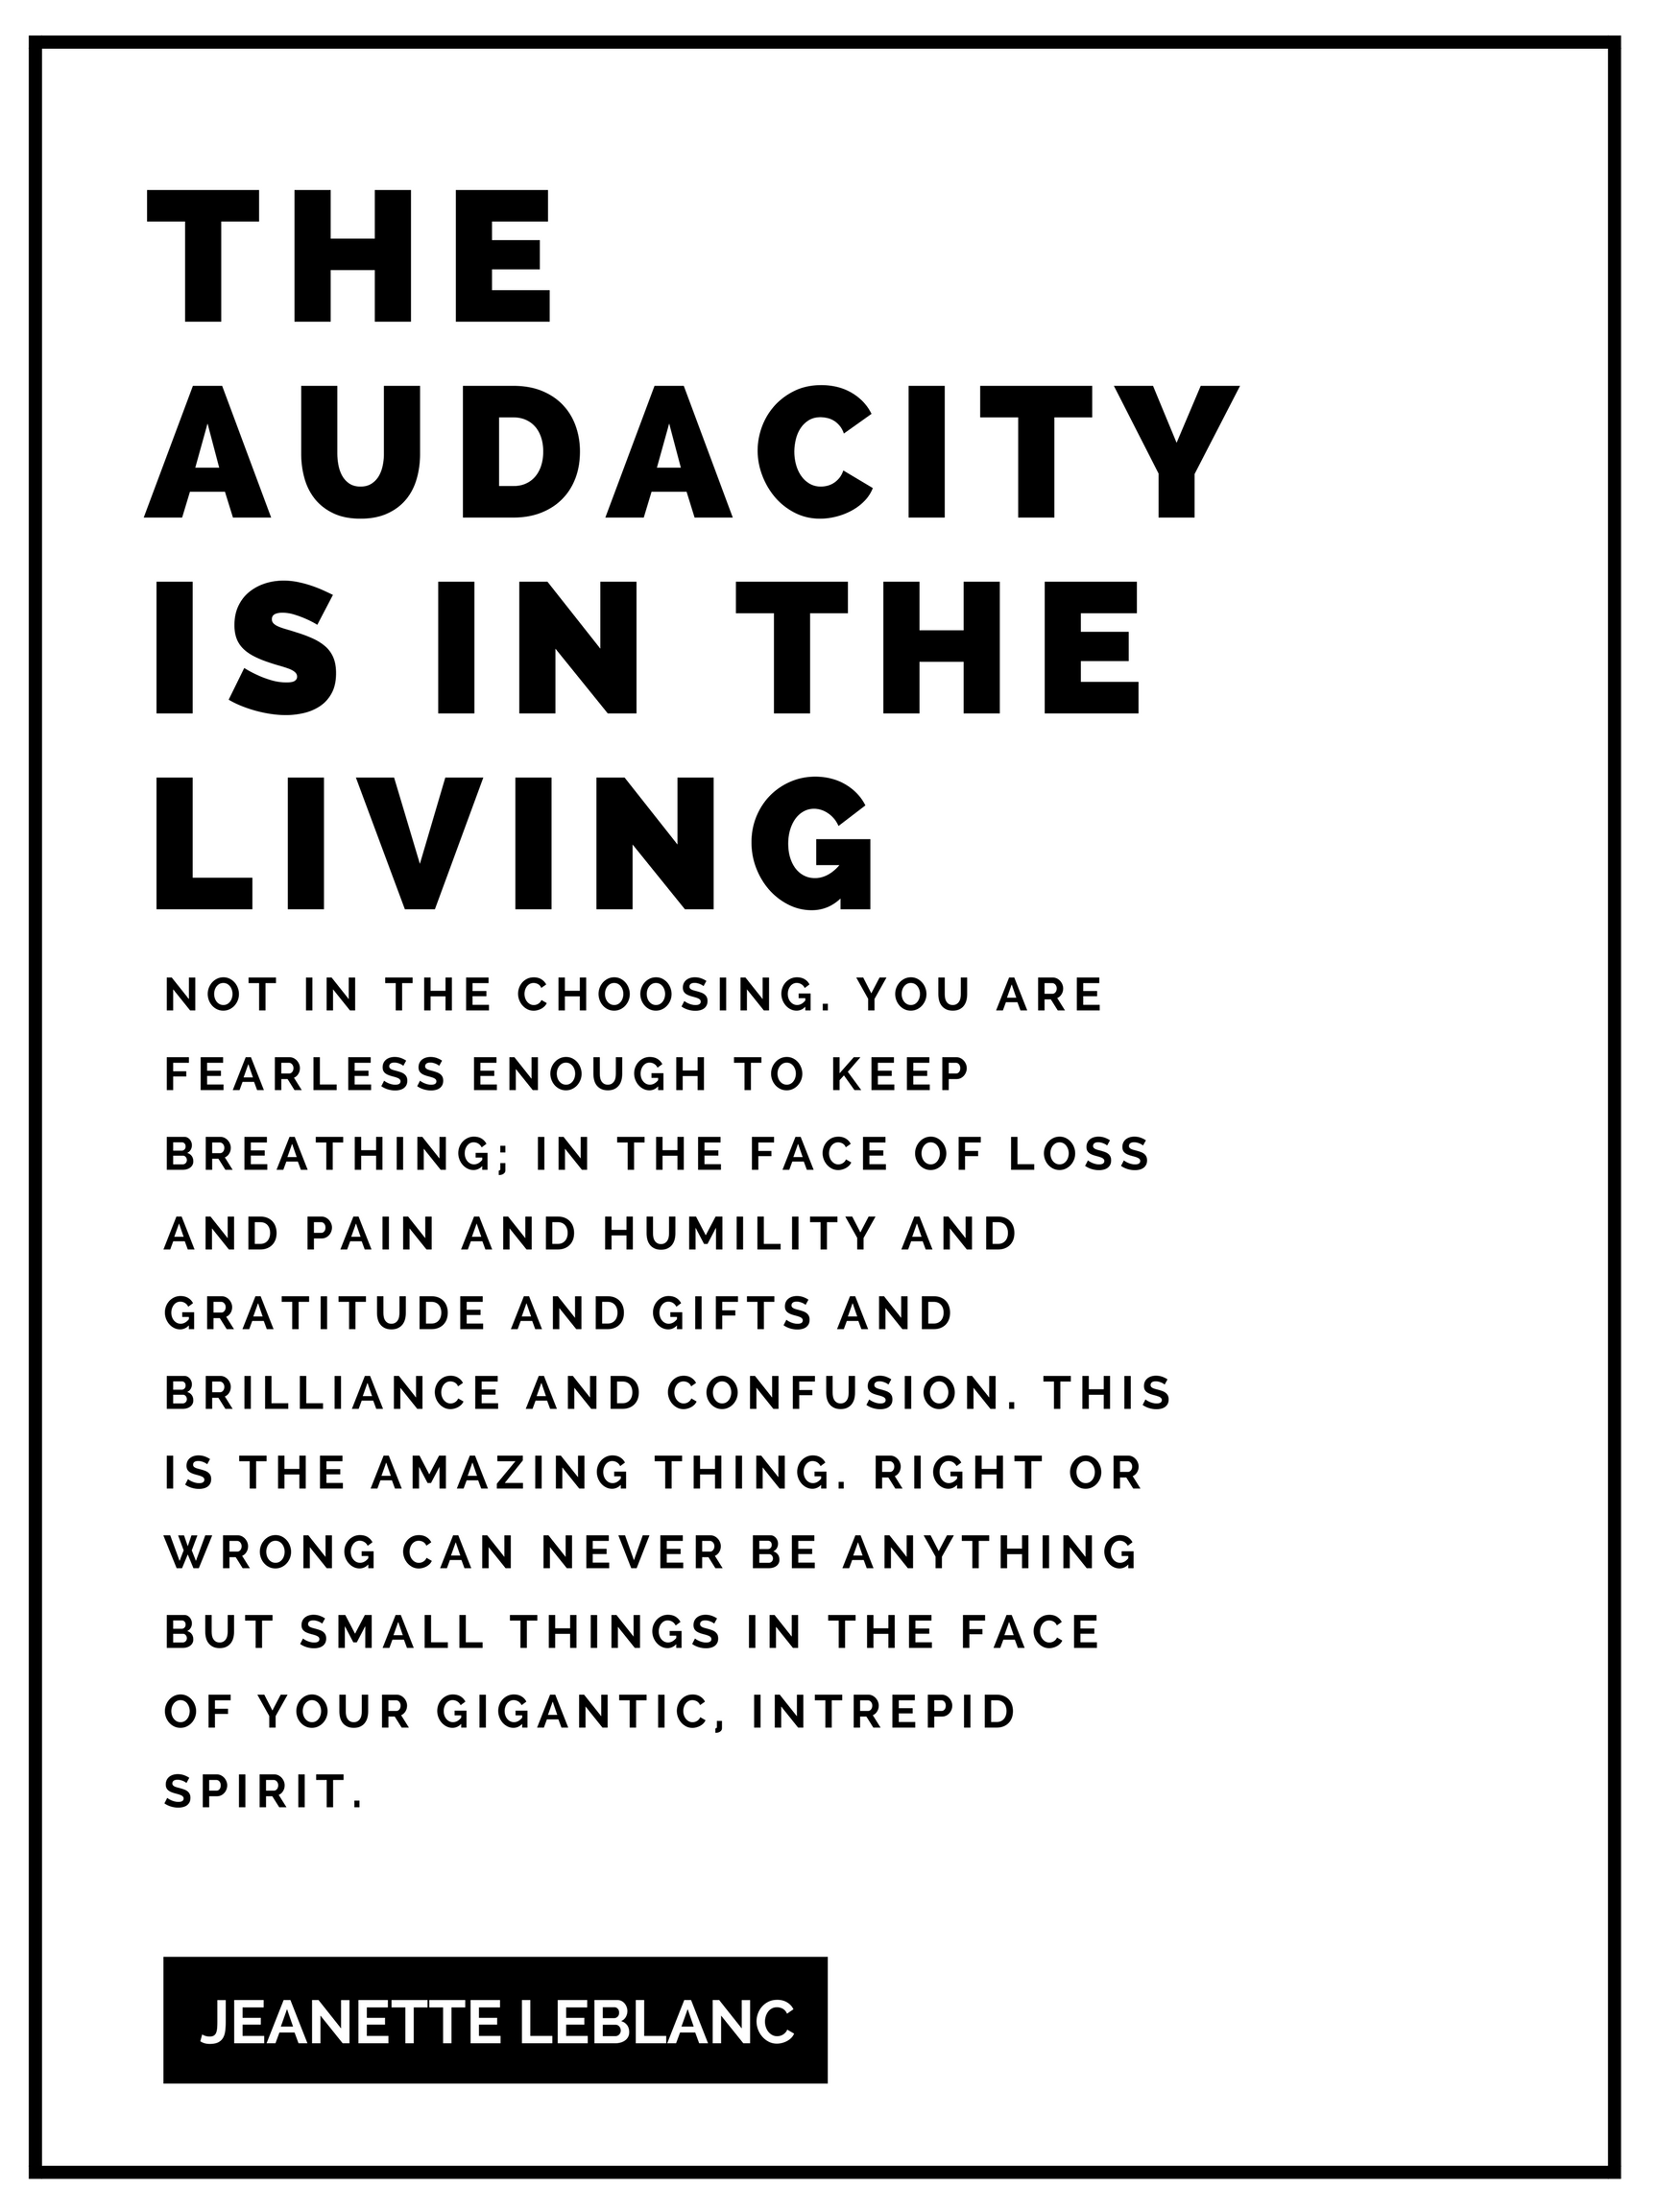 The audacity is in the living -  Quote by Jeanette LeBlanc